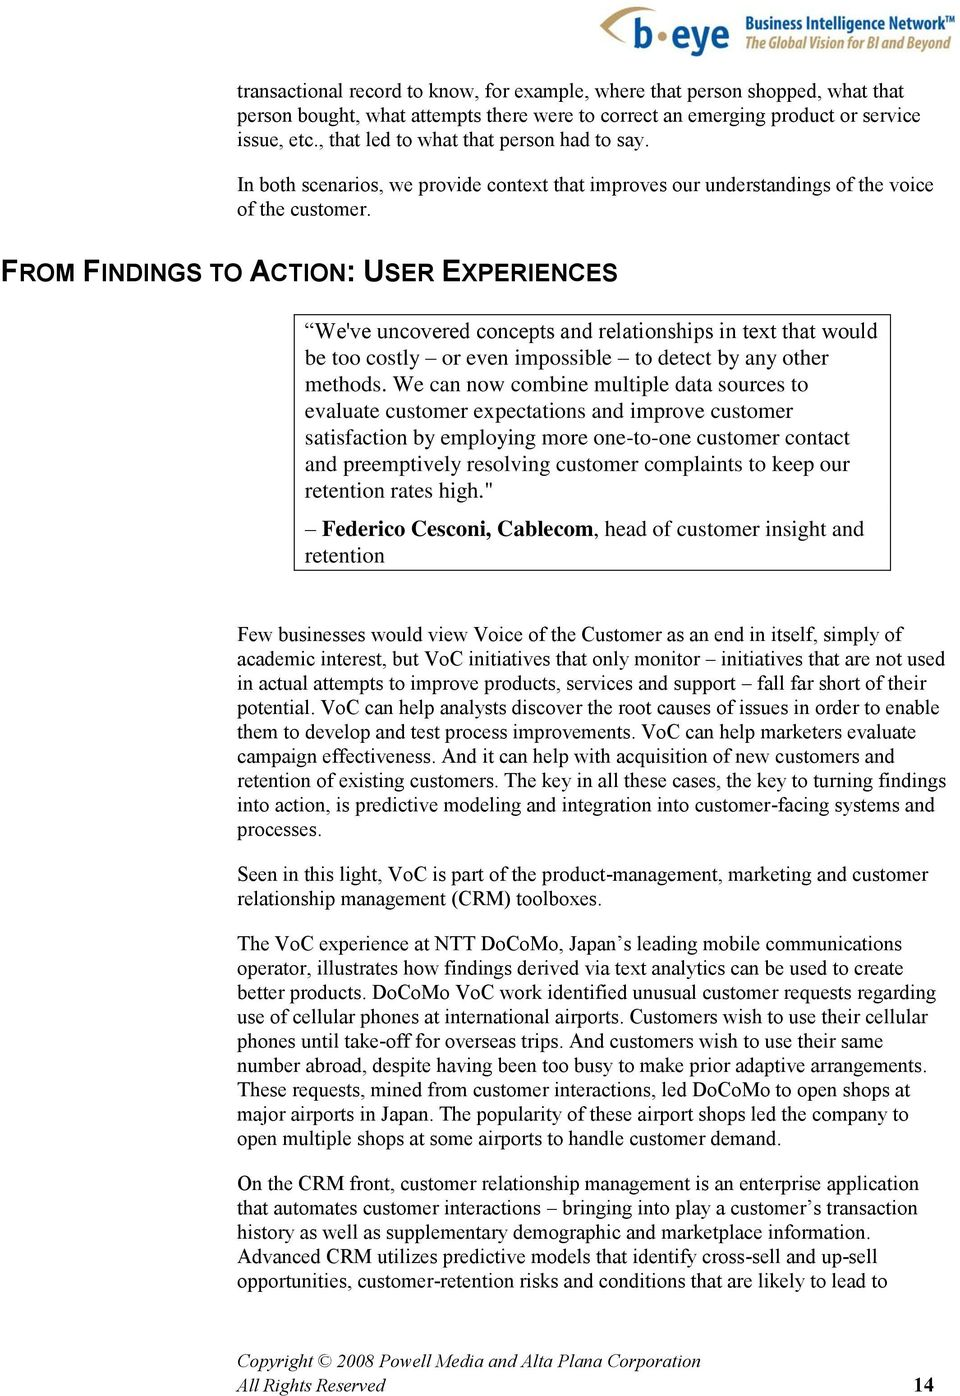 FROM FINDINGS TO ACTION: USER EXPERIENCES We've uncovered concepts and relationships in text that would be too costly or even impossible to detect by any other methods.